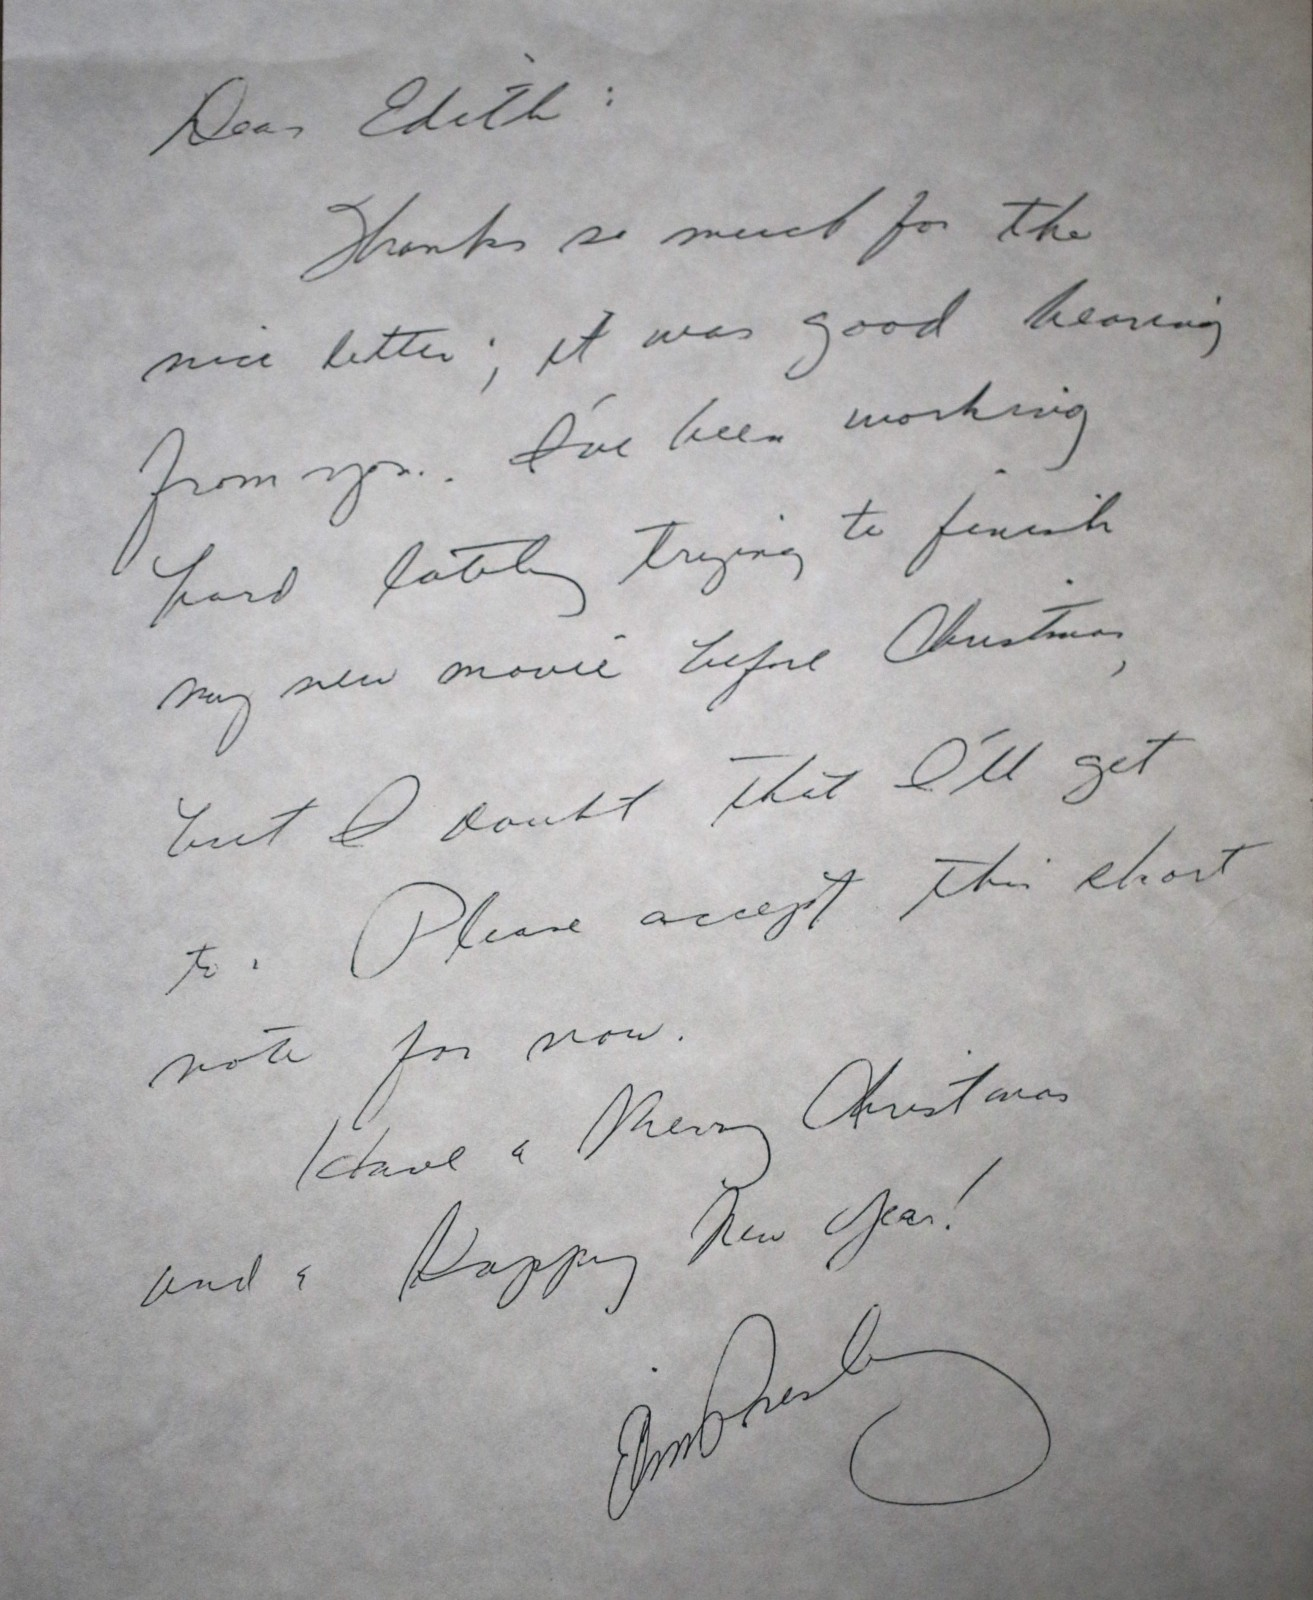 """This is the letter I once owned. Look at the bubble Y, Elvis never bubbled his writing out. I didn't have a lot of samples back then, but when I looked at this writing, thinking about Elvis Presley and his personality, this is a curvy, curly writing, which in my mind looks like it would have been written by a female rather than a male. She did a decent job of copying his signature. The E is left out of the end of his name."" VERDICT: A secretarial, written and signed by a friend or employee of Elvis."